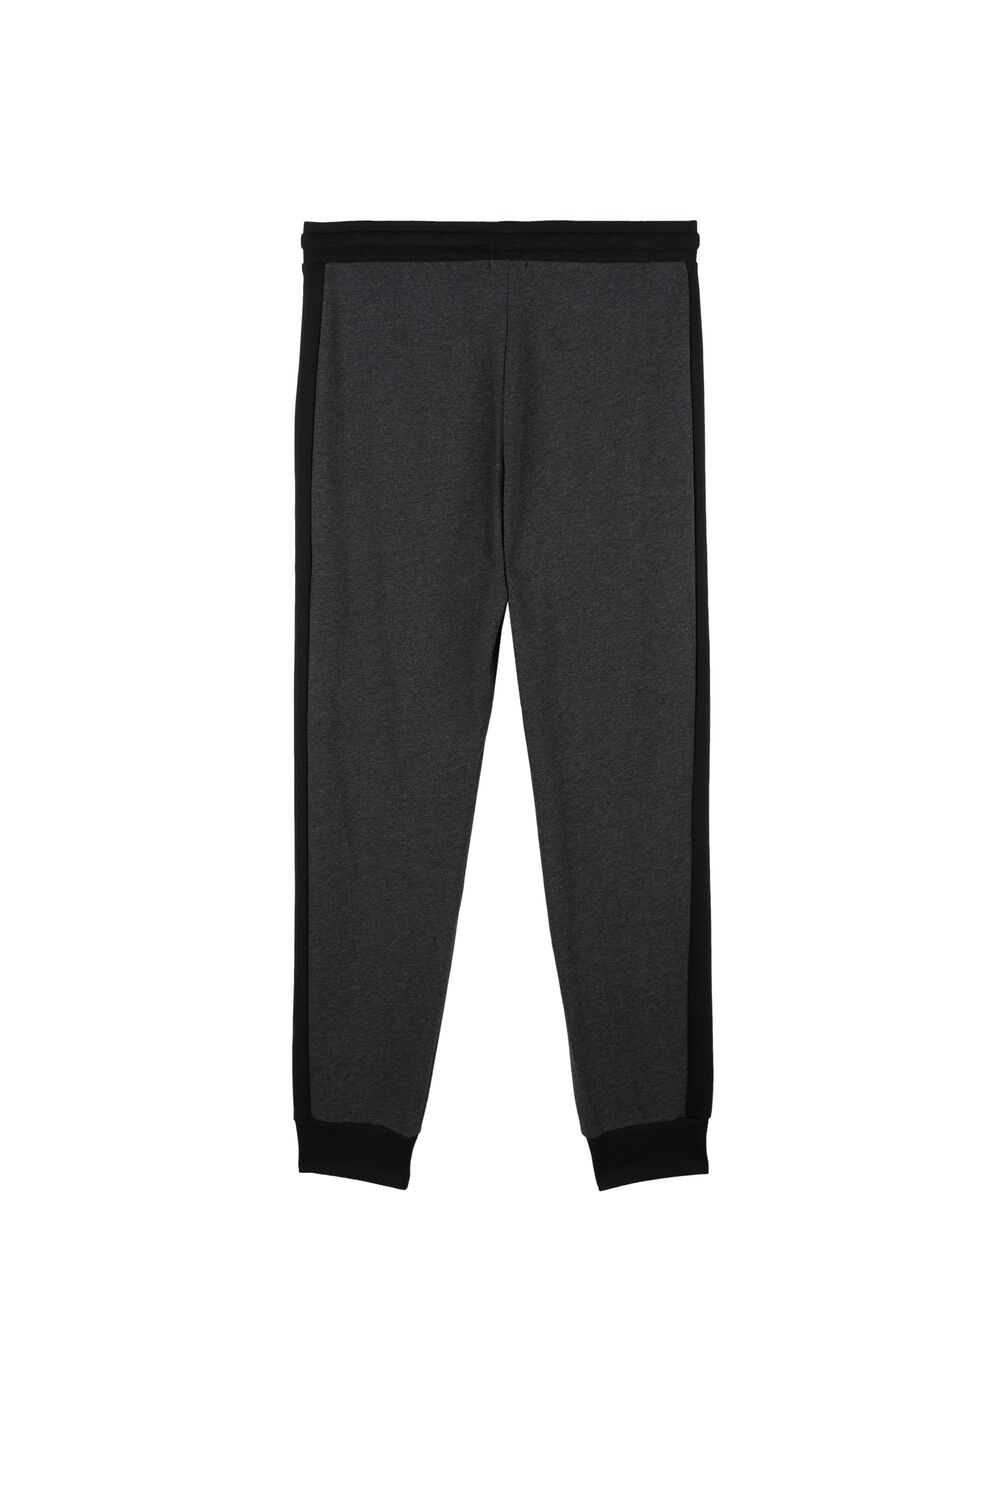 Two Tone Trousers